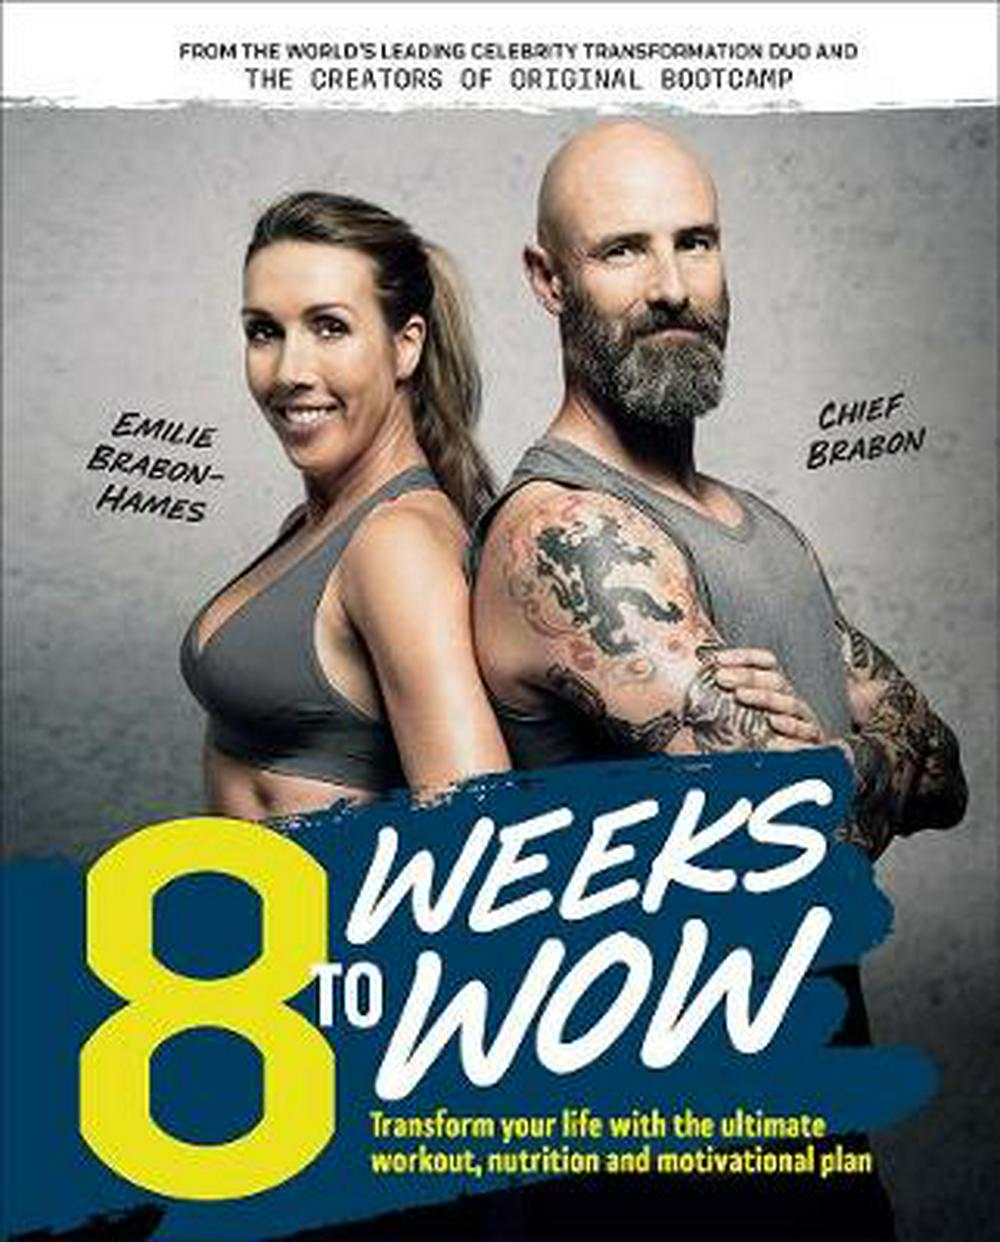 8 Weeks To WowTransform your life with the ultimate workout, ...